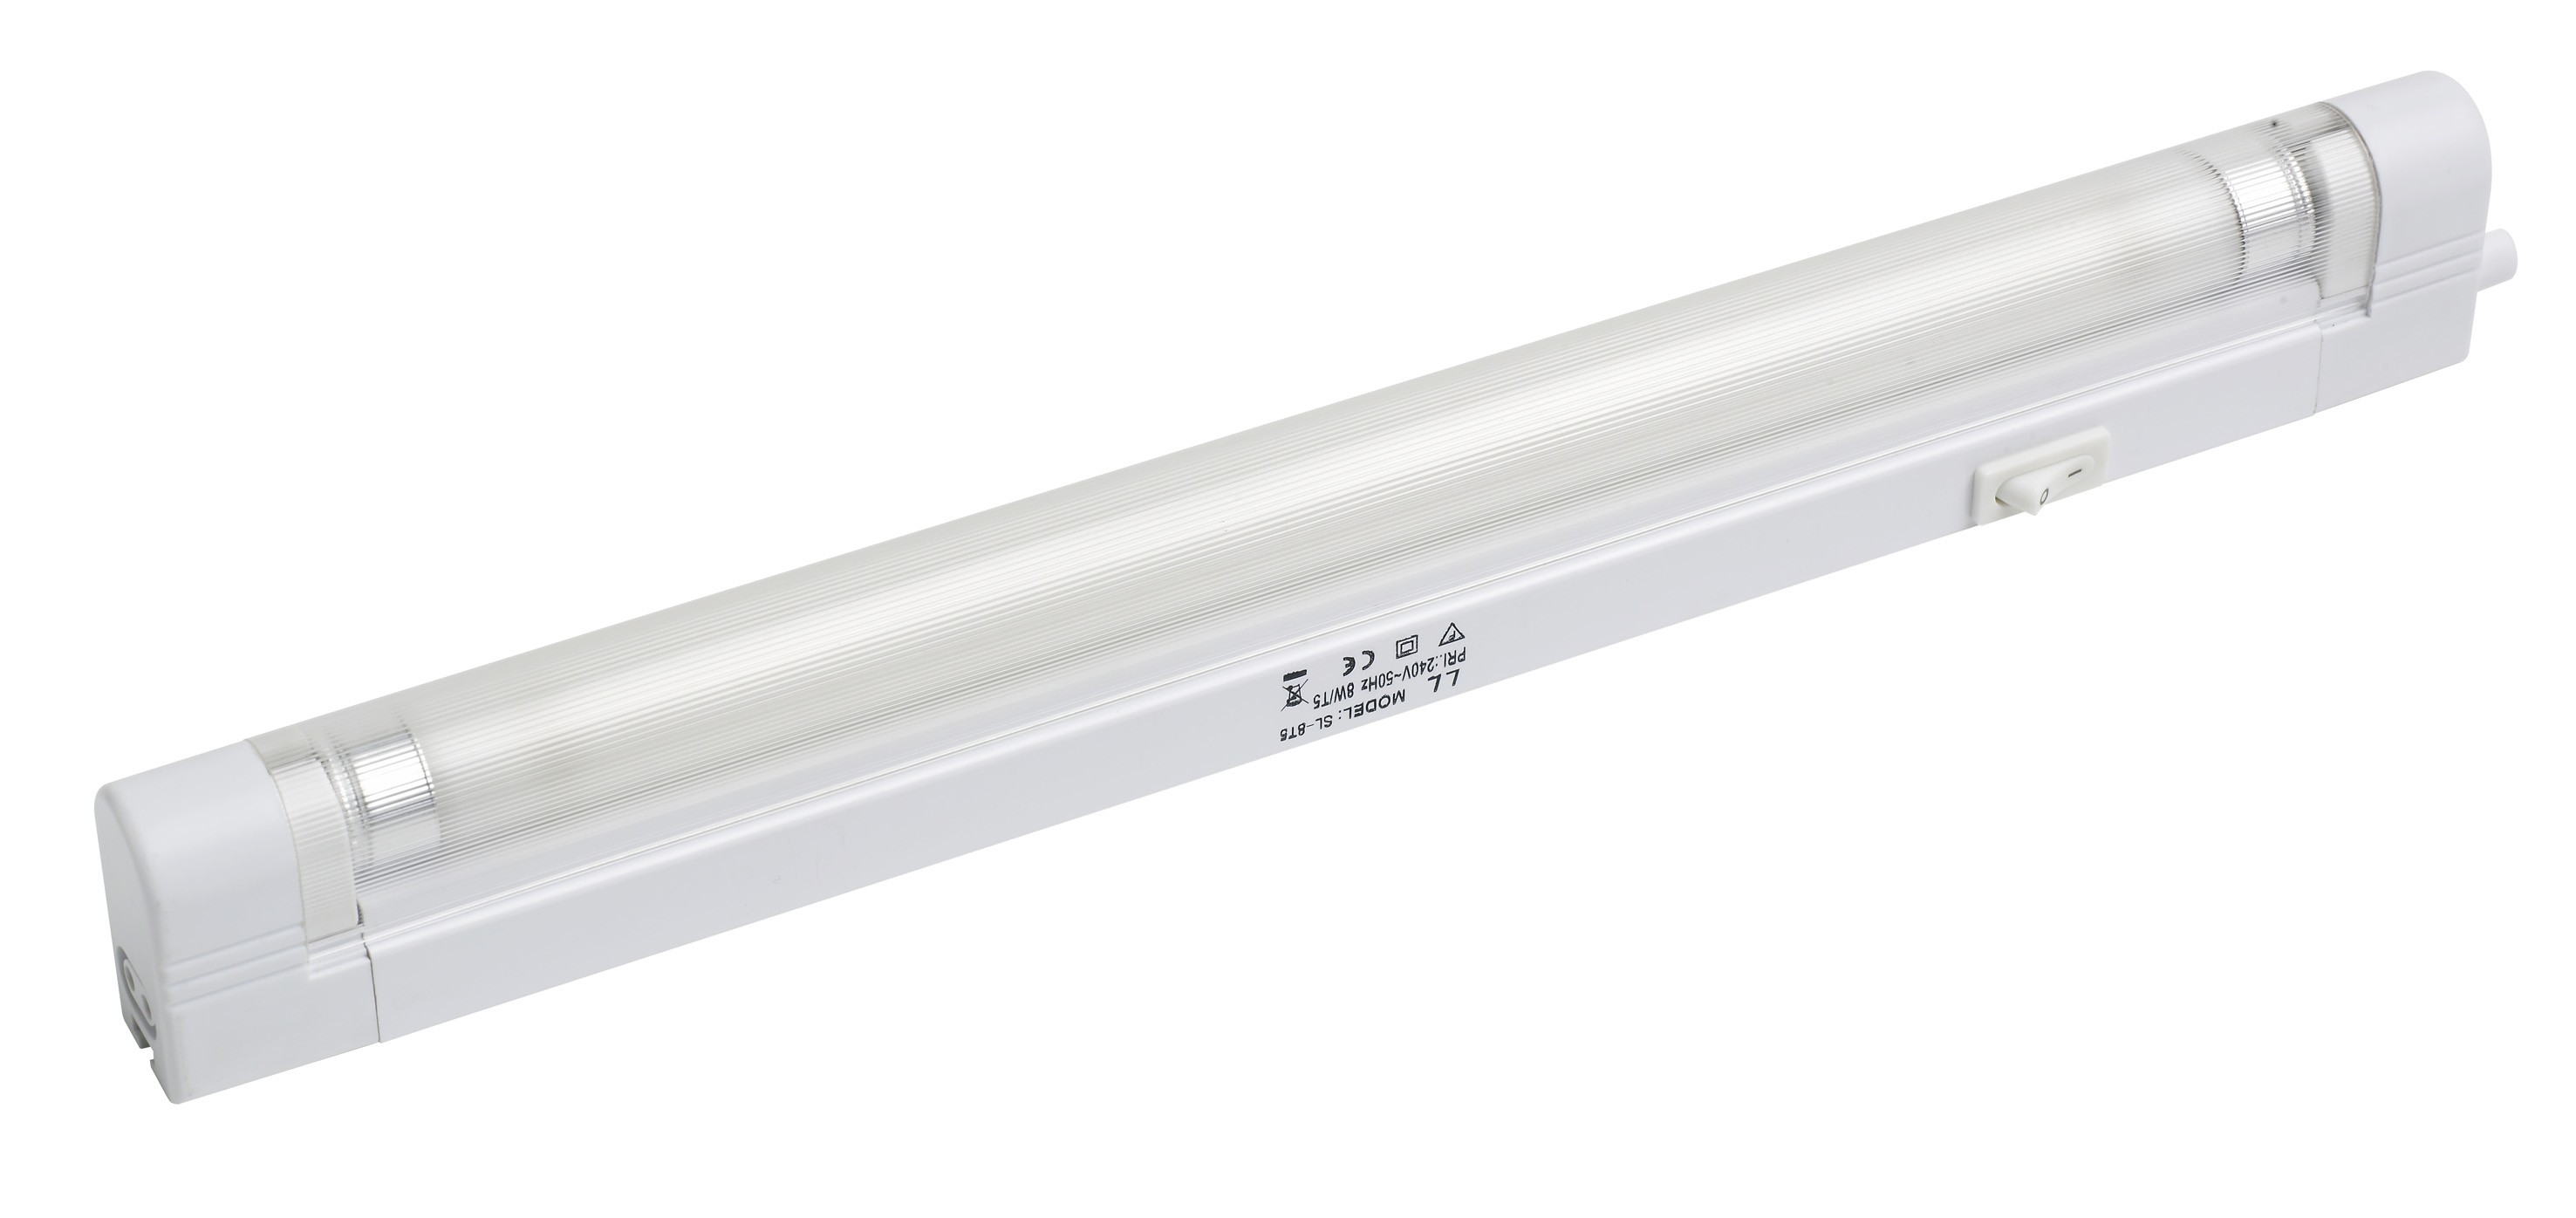 Slimline fluorescent cabinet light 6w T5 length 267mm